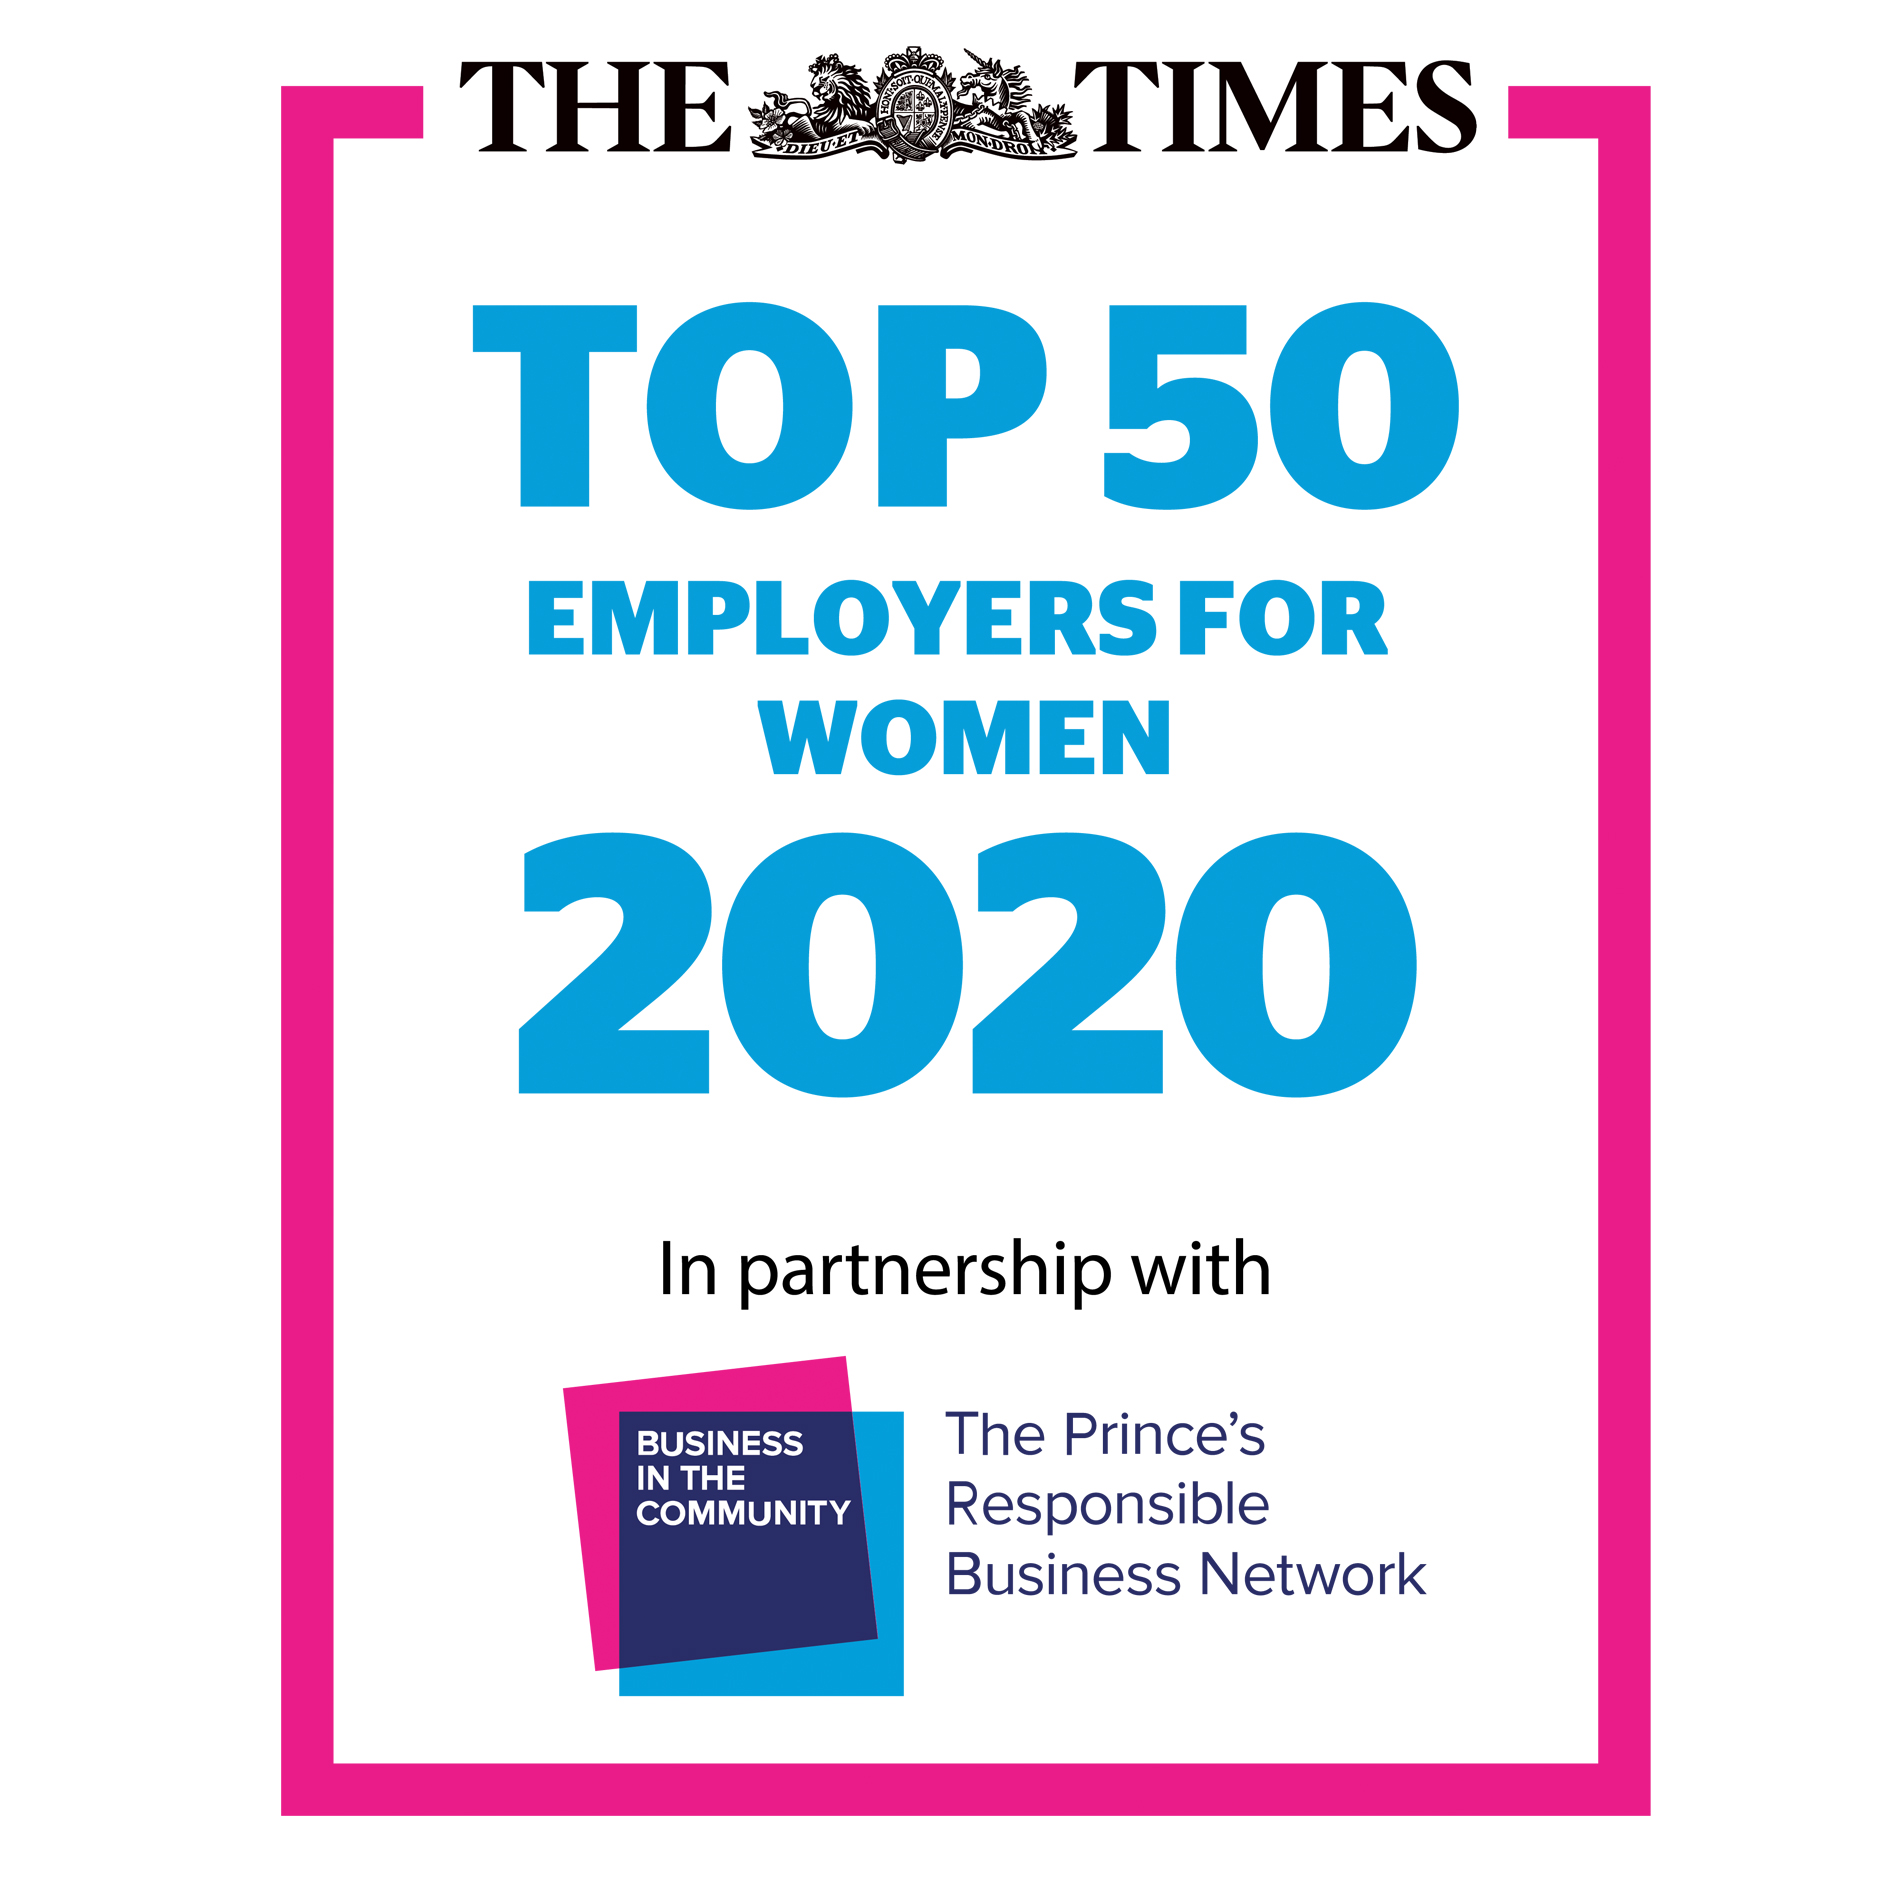 The Times Top 50 Employers For Women 2020